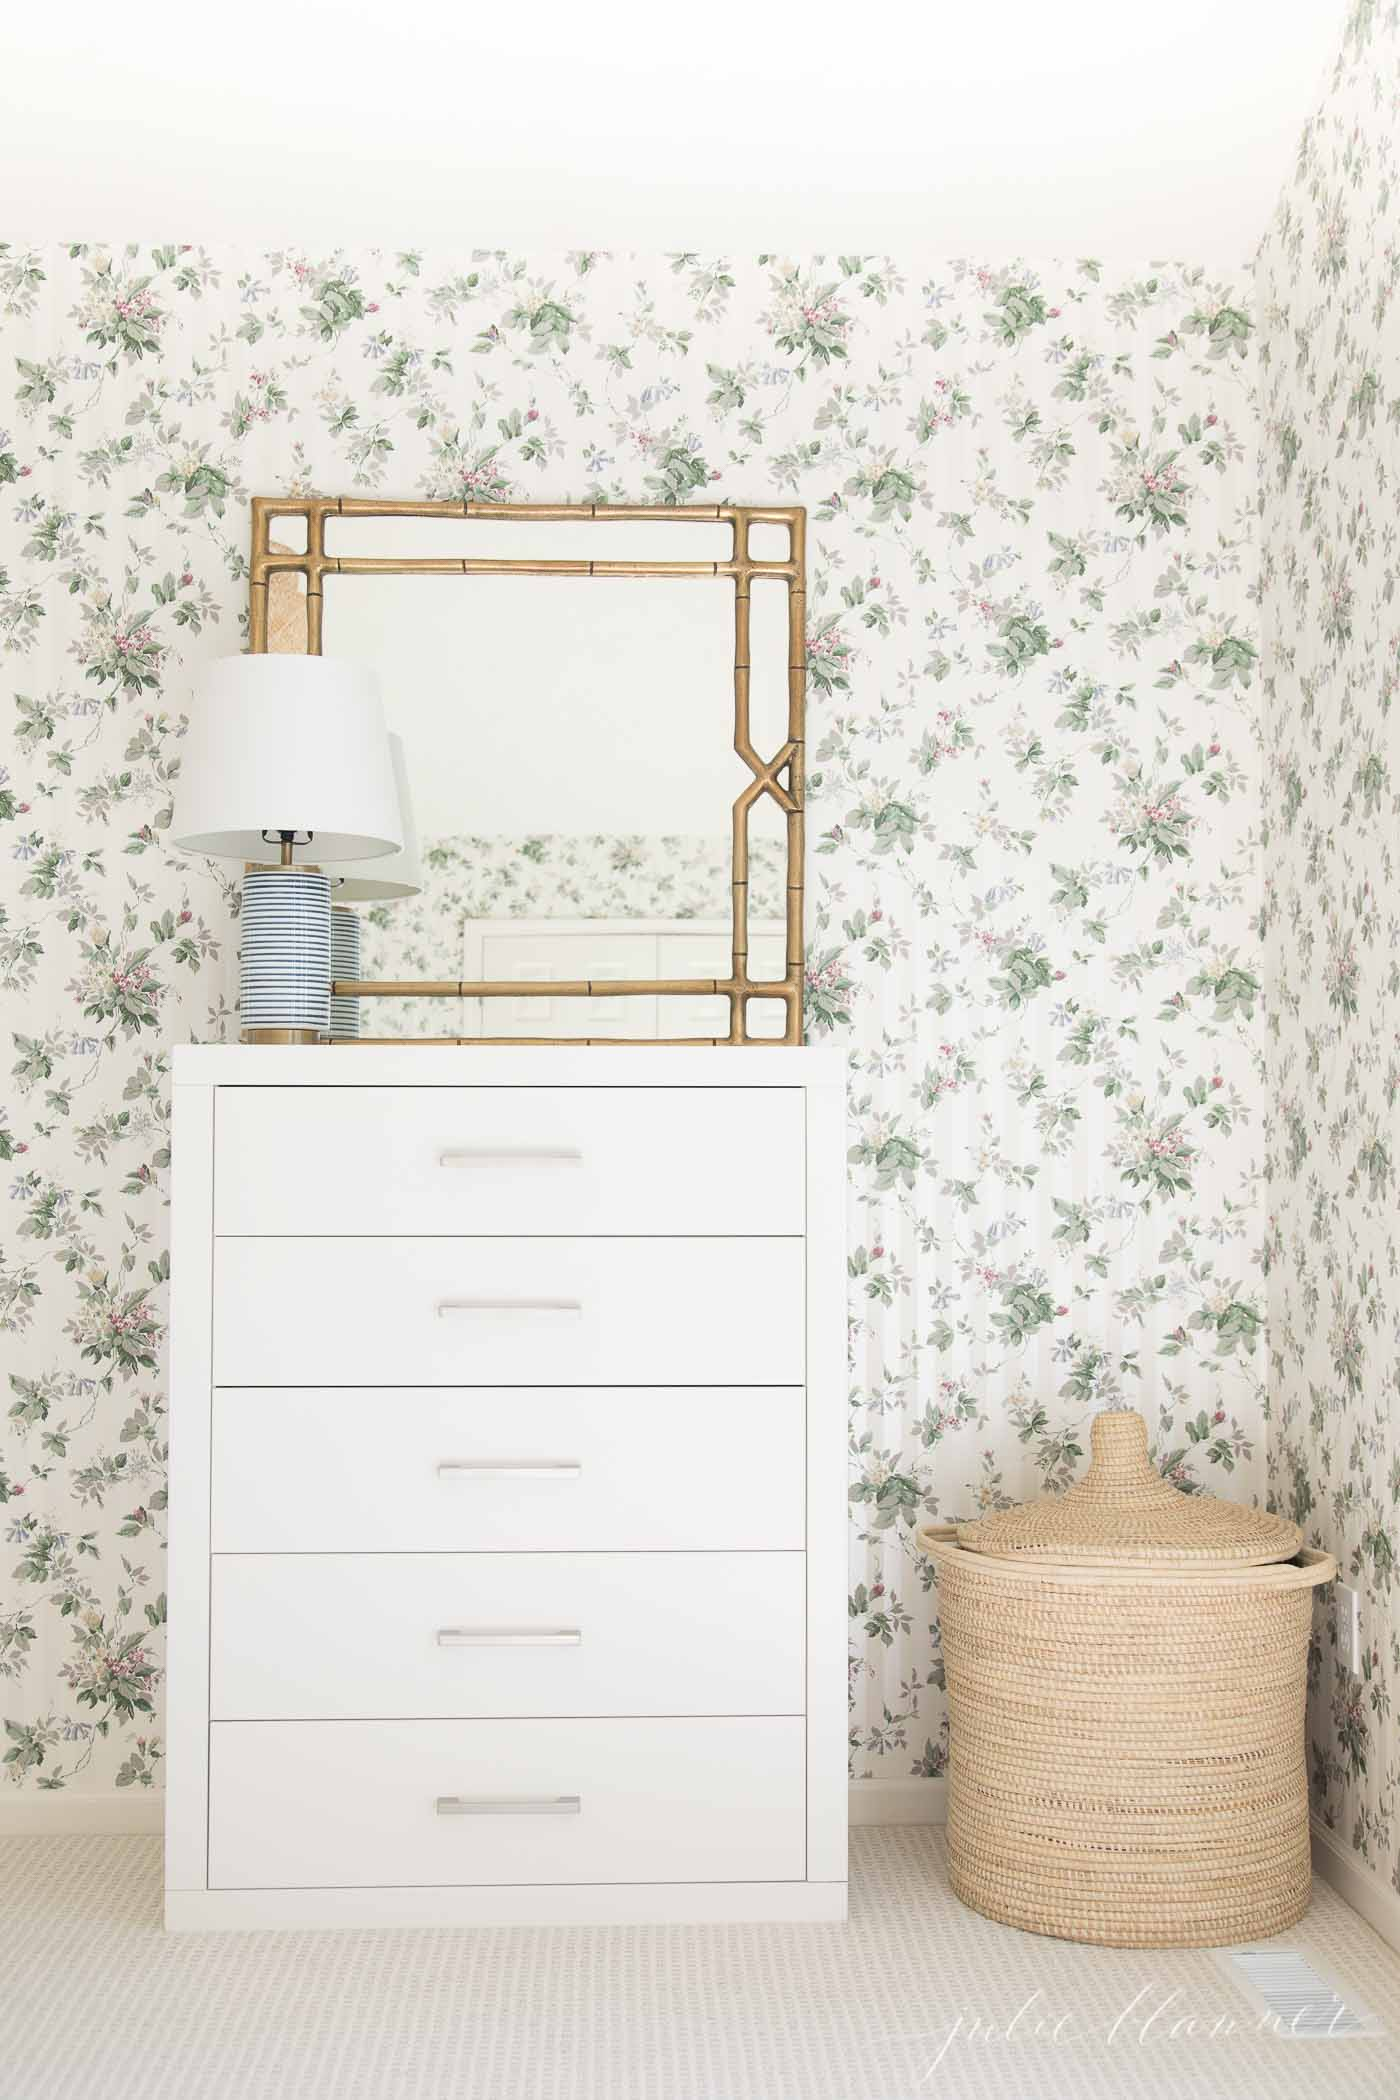 A white dresser in a bedroom with floral wallpaper and beige patterned carpet.